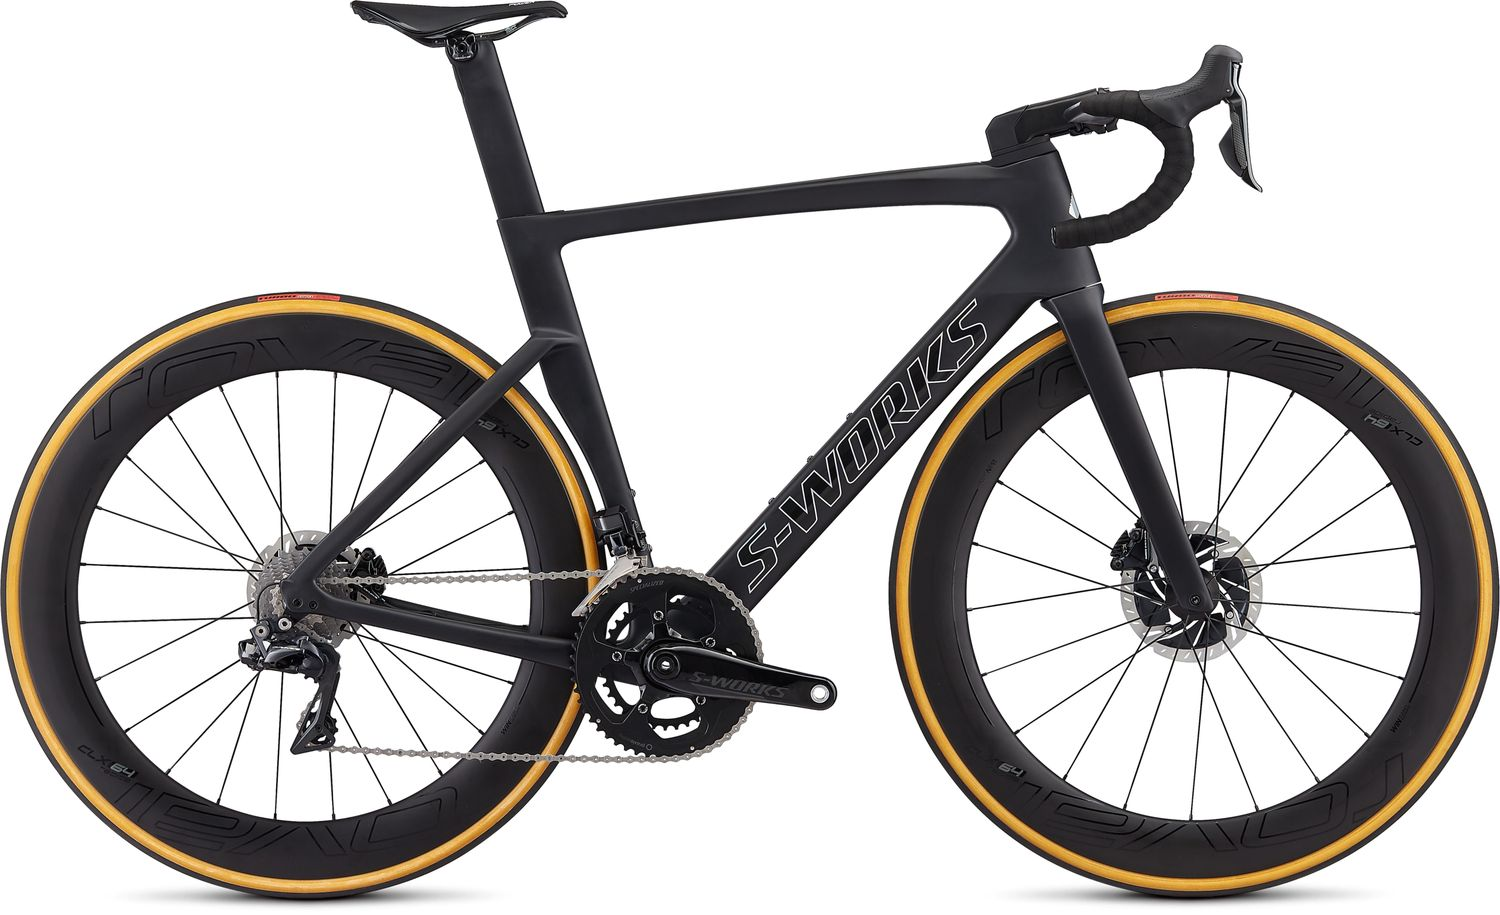 Specialized 2019 S-Works Venge Disc